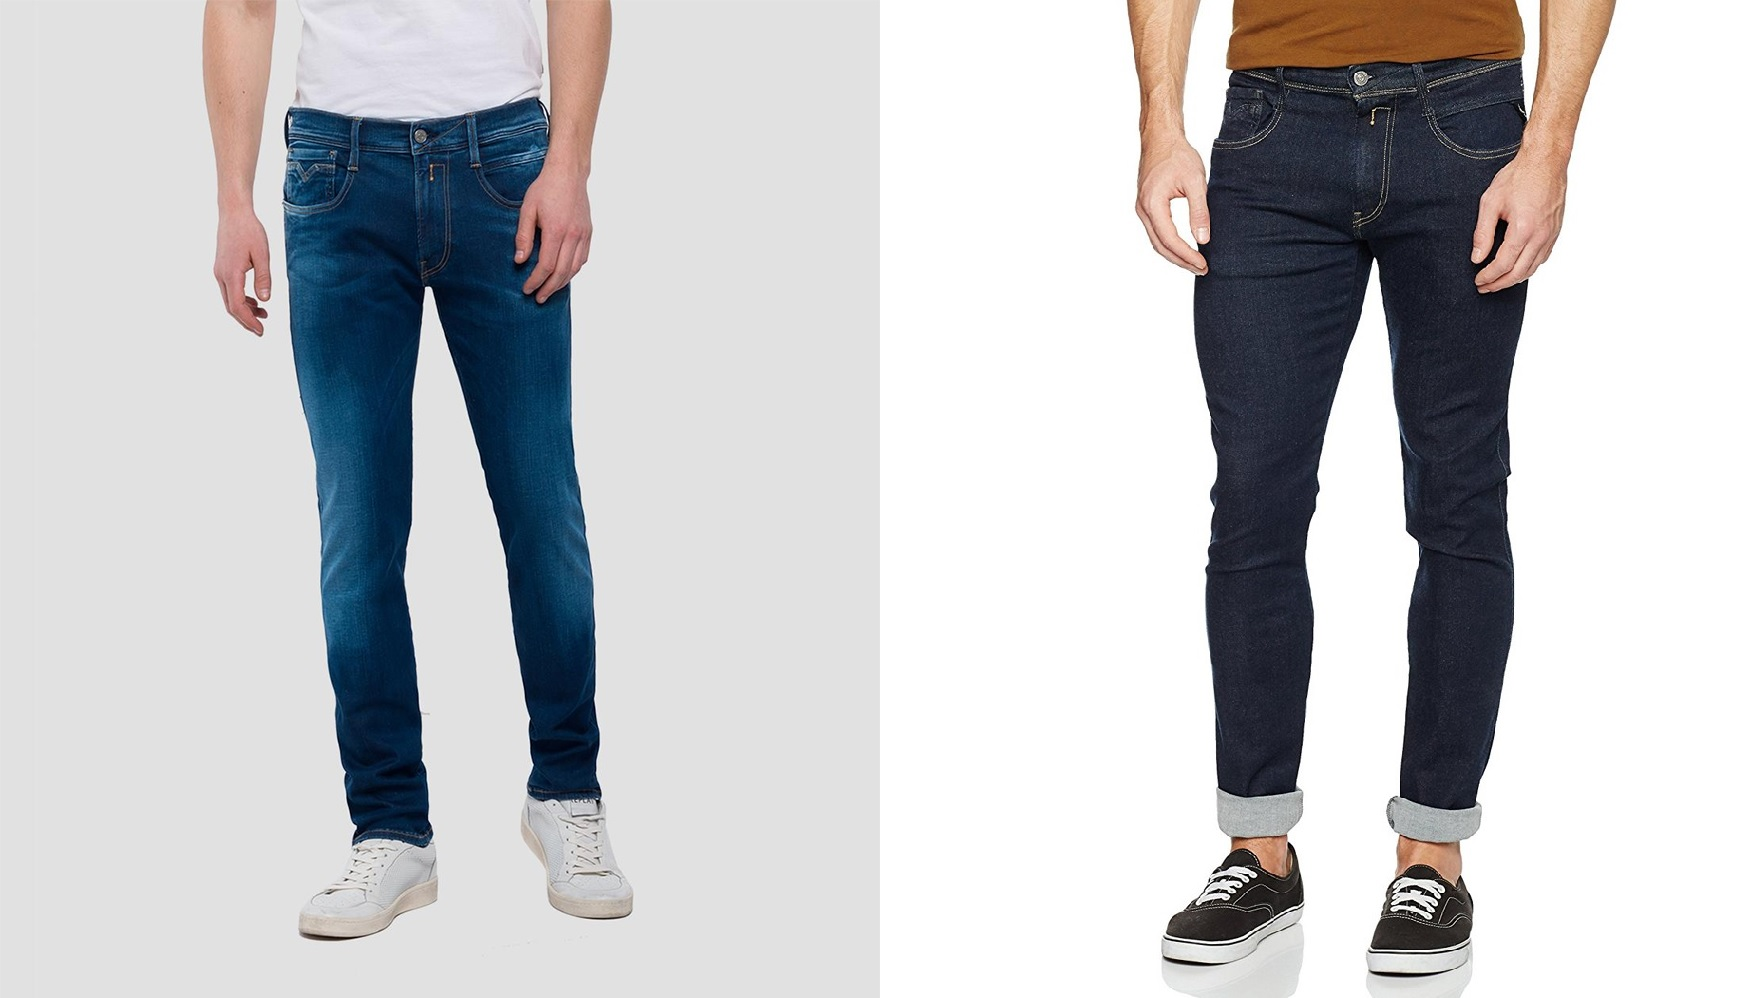 Anbass Hyperflex Slim Jean by Replay